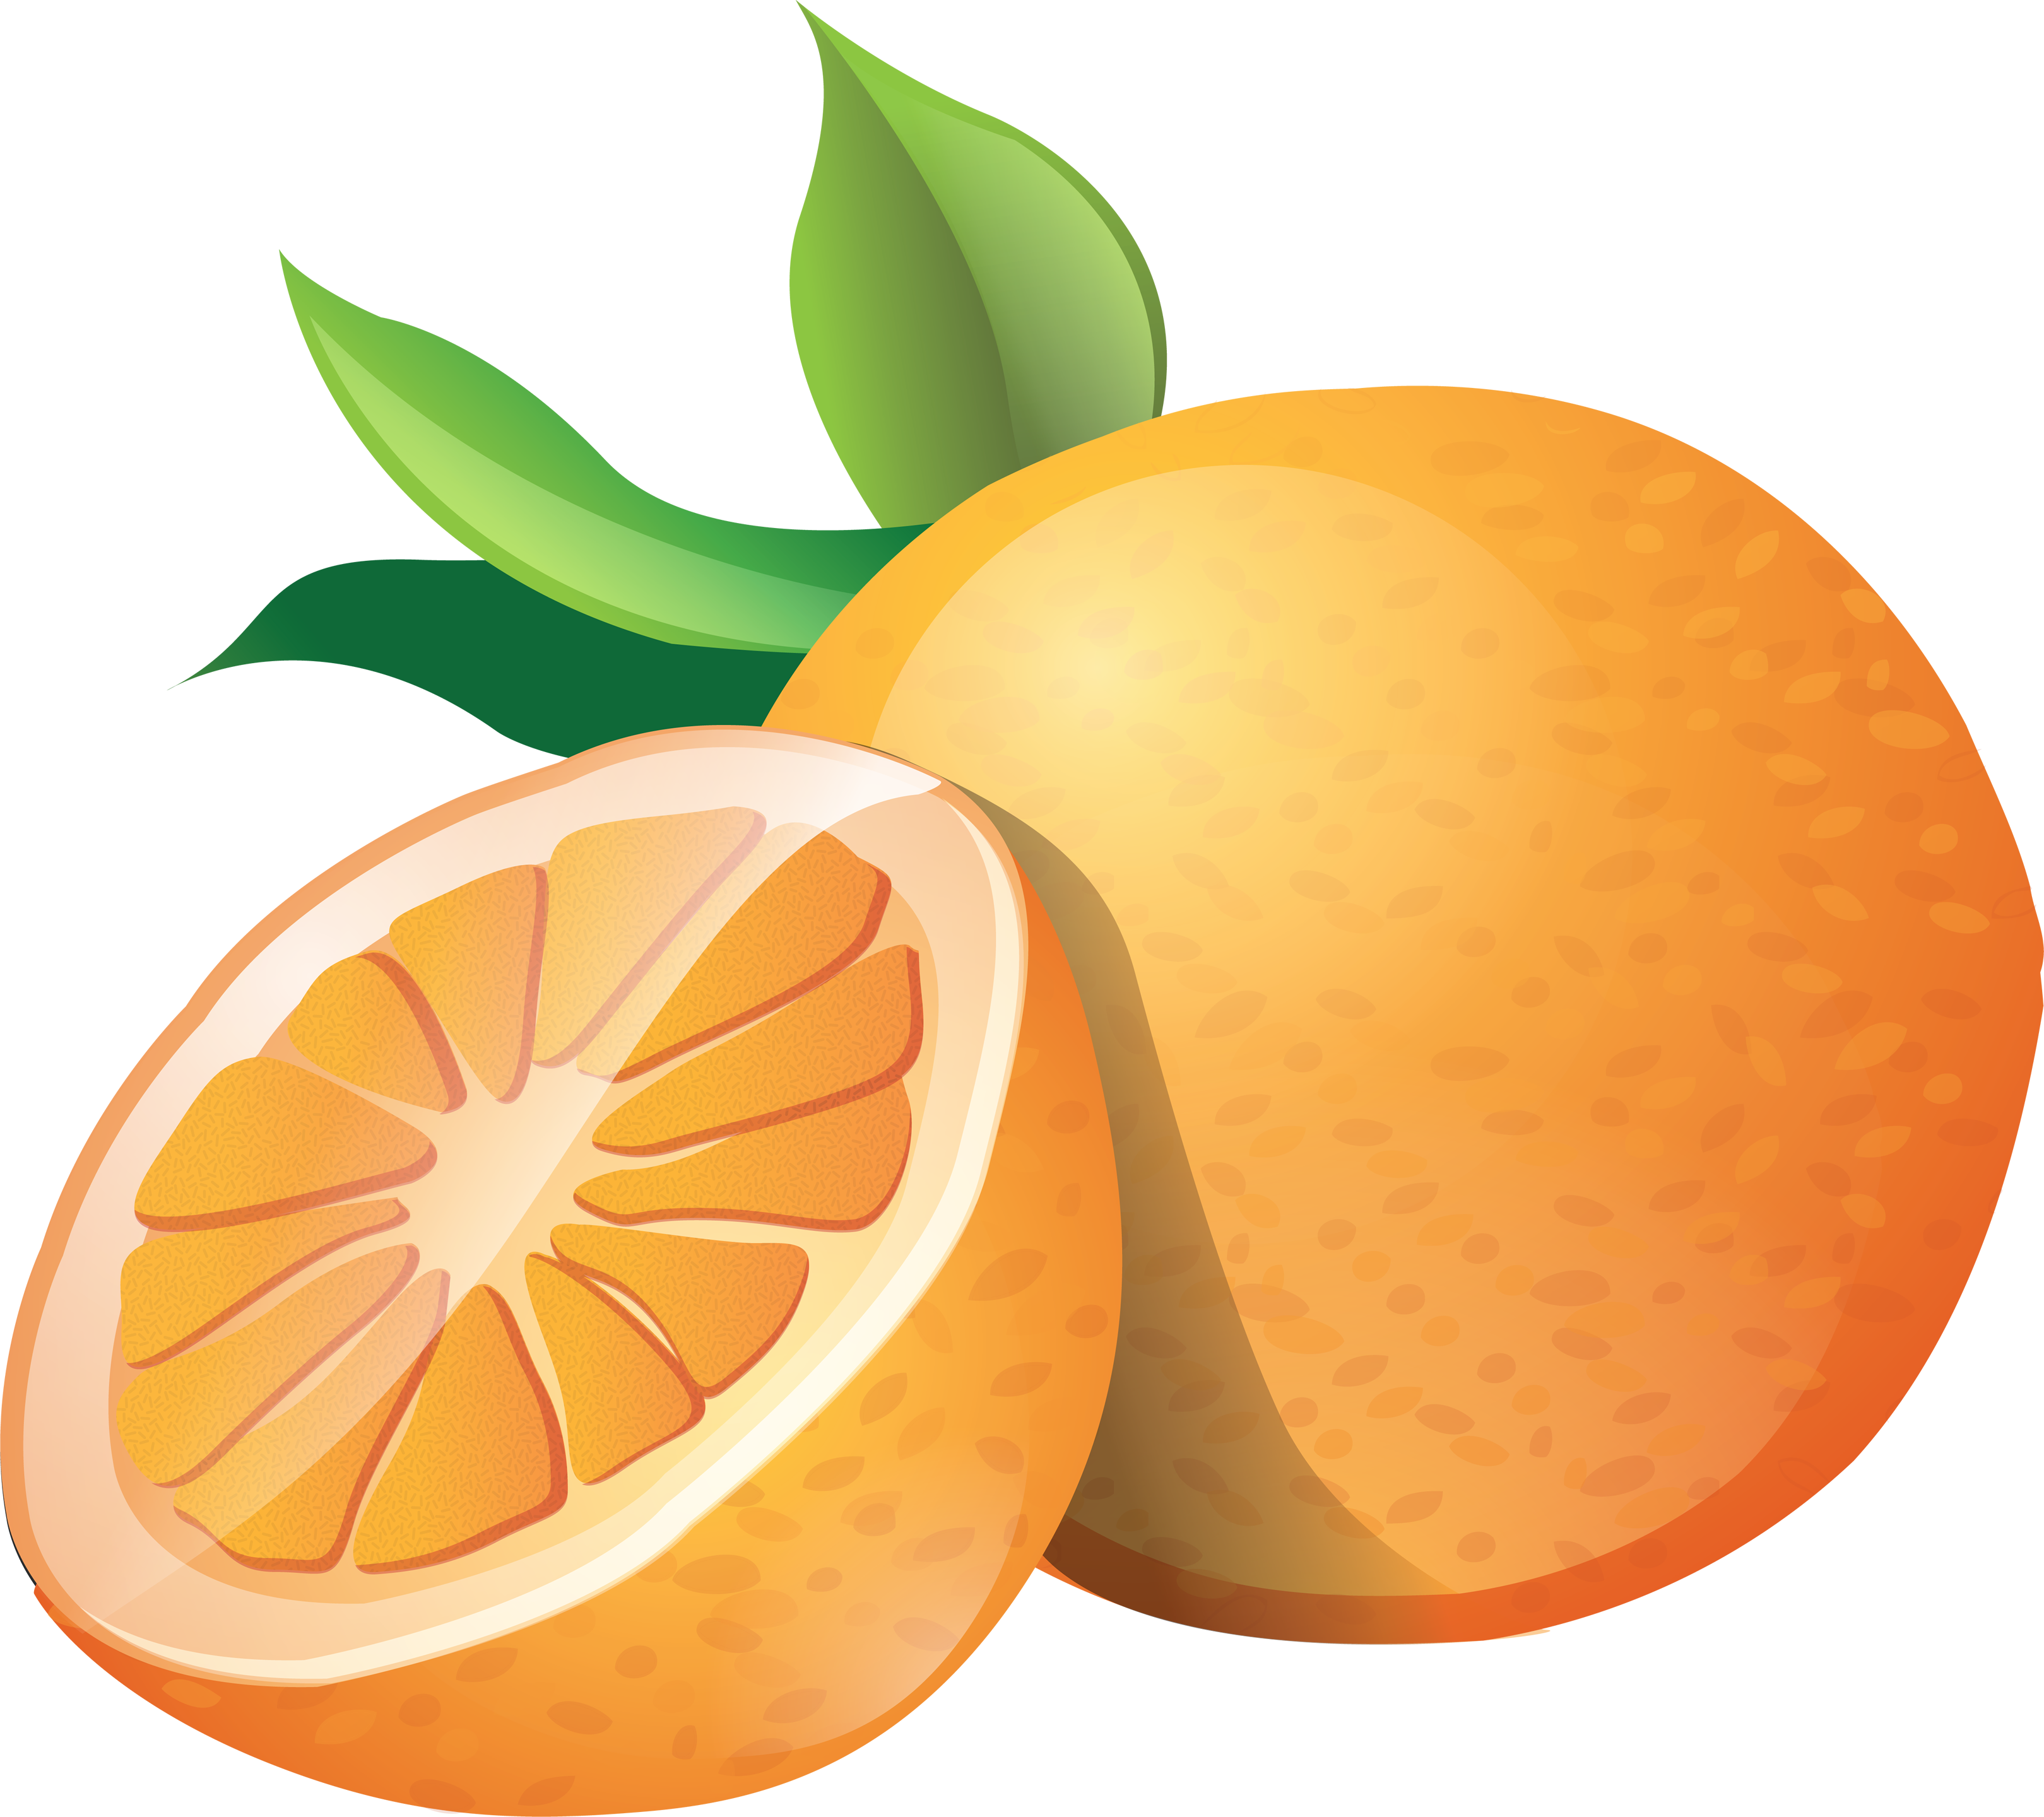 Orange Clipart Image Gallery Picture Pho-Orange Clipart Image Gallery Picture Photography Galleries For Pc-9